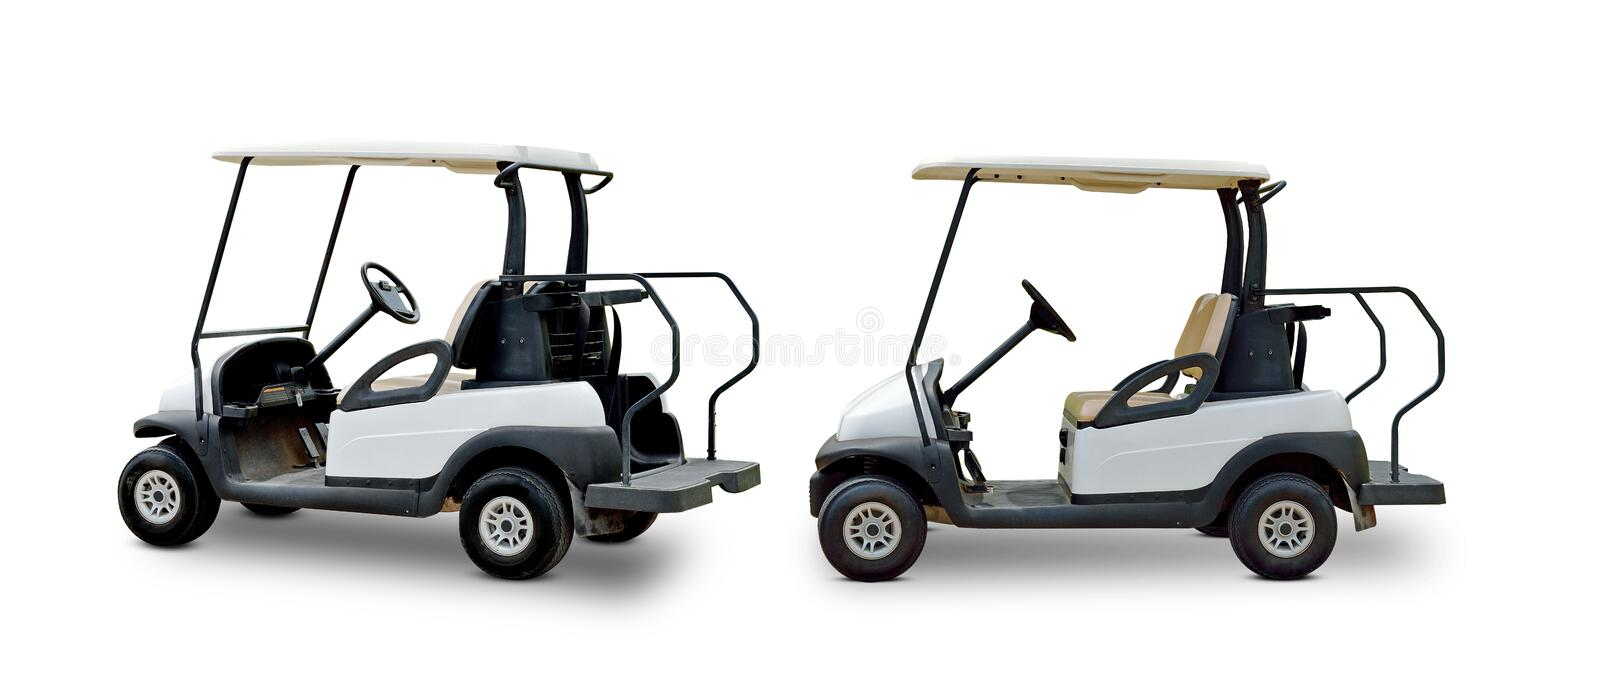 Golf cart golfcart isolated on white background stock photography